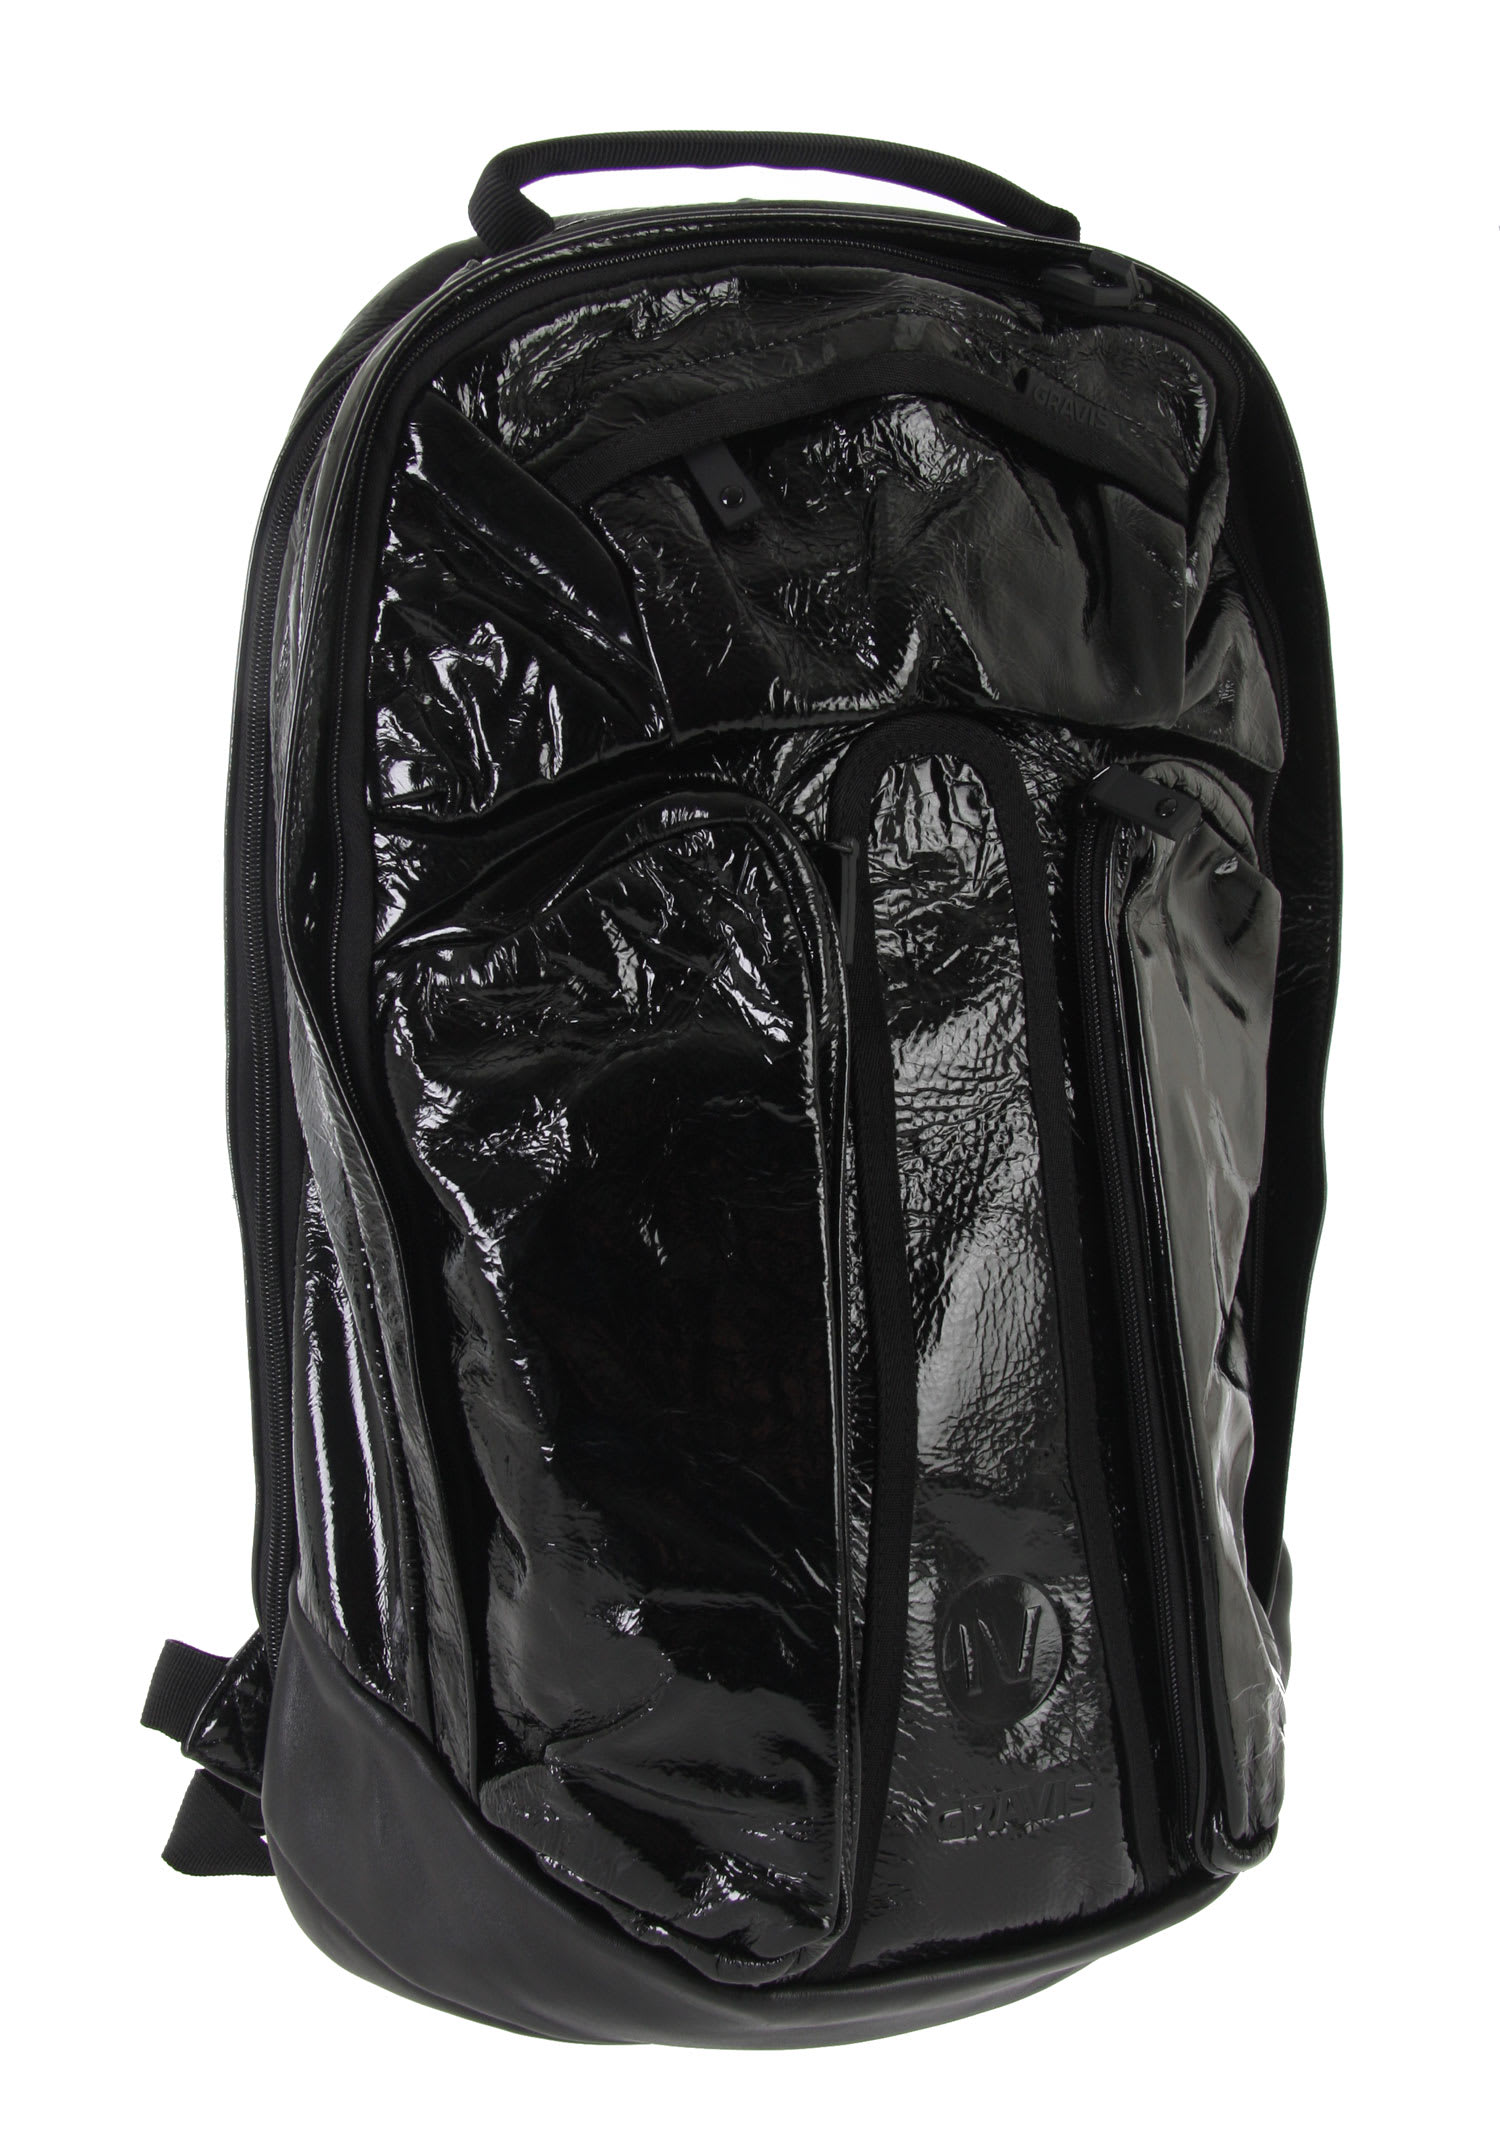 Gravis Metro Black Box Backpack Black Leather